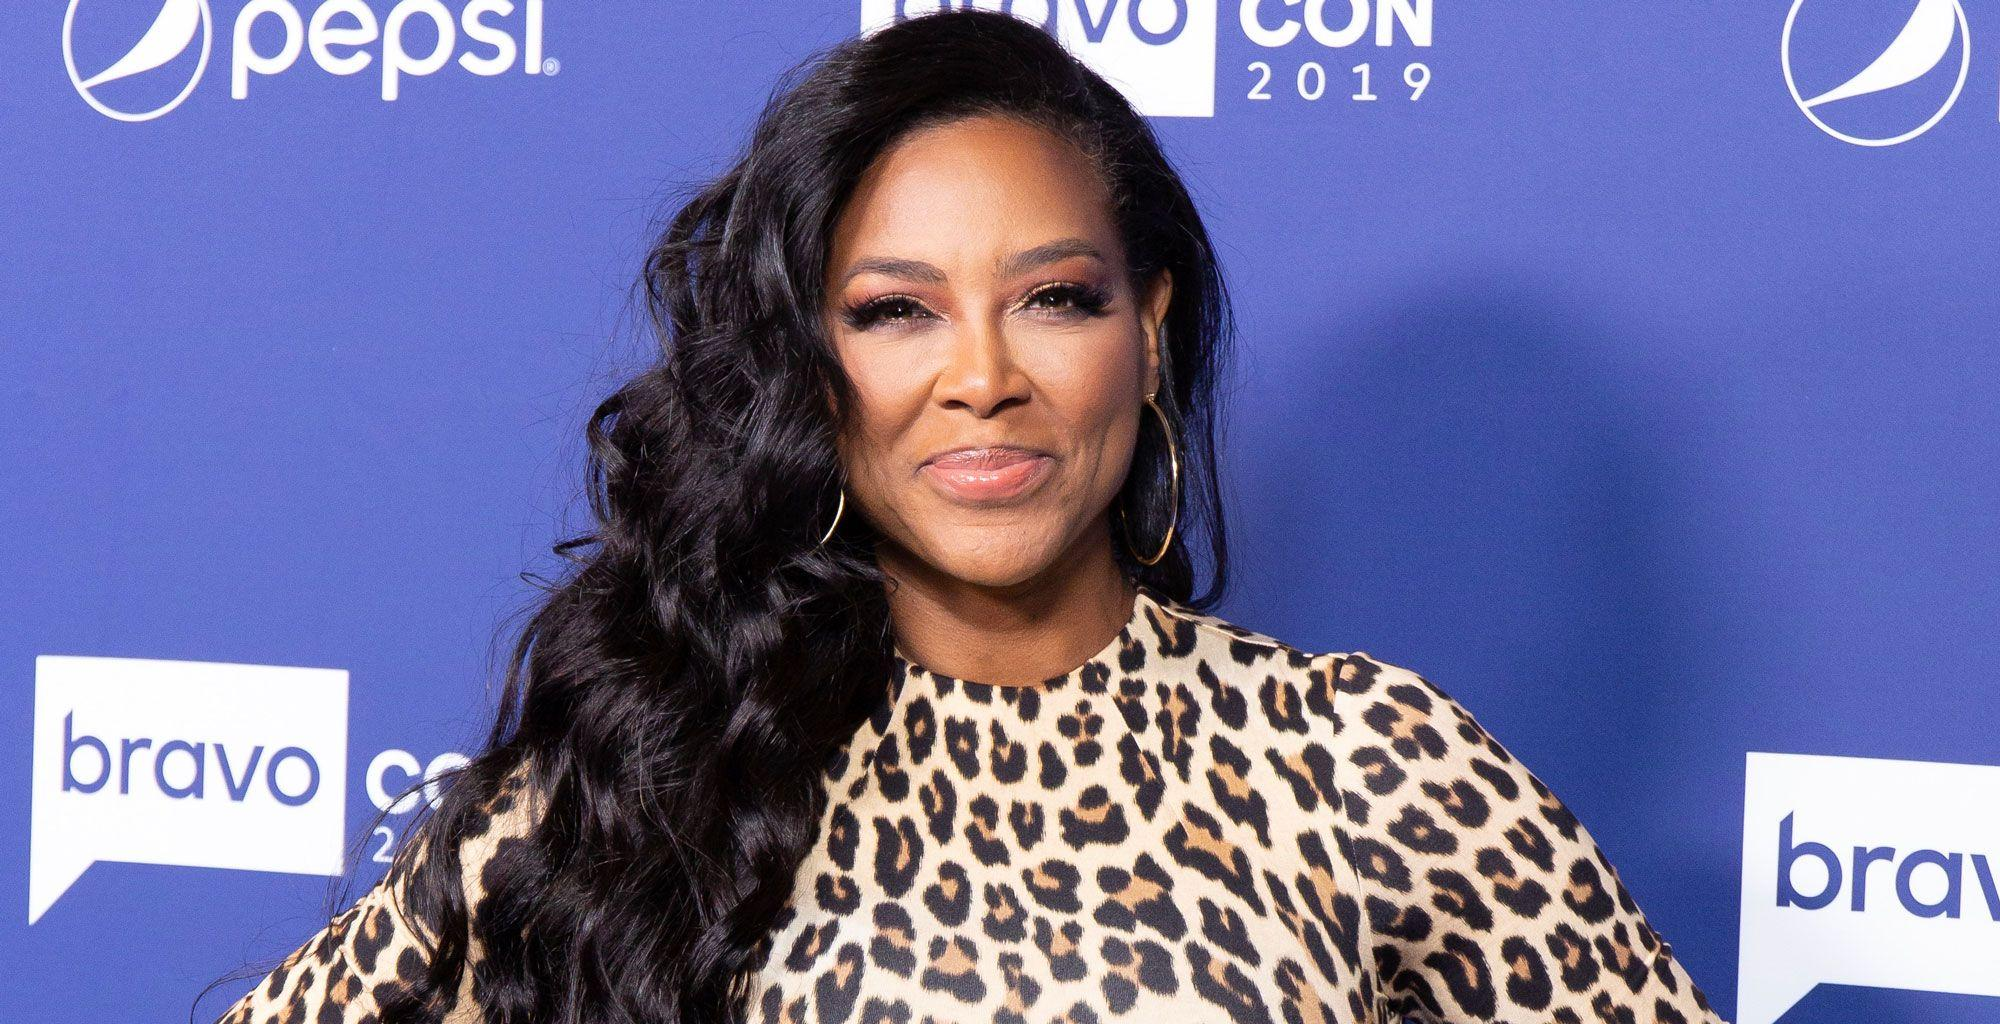 Kenya Moore Impresses Fans With This Throwback Photo - See It Here